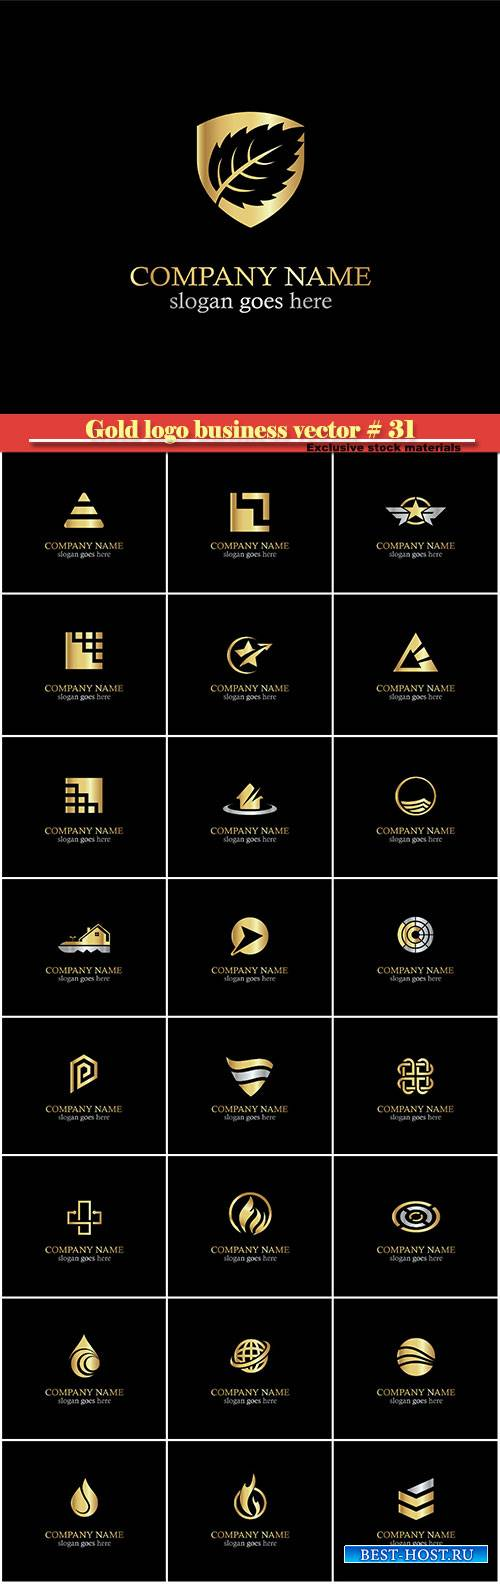 Gold logo business vector illustration # 31